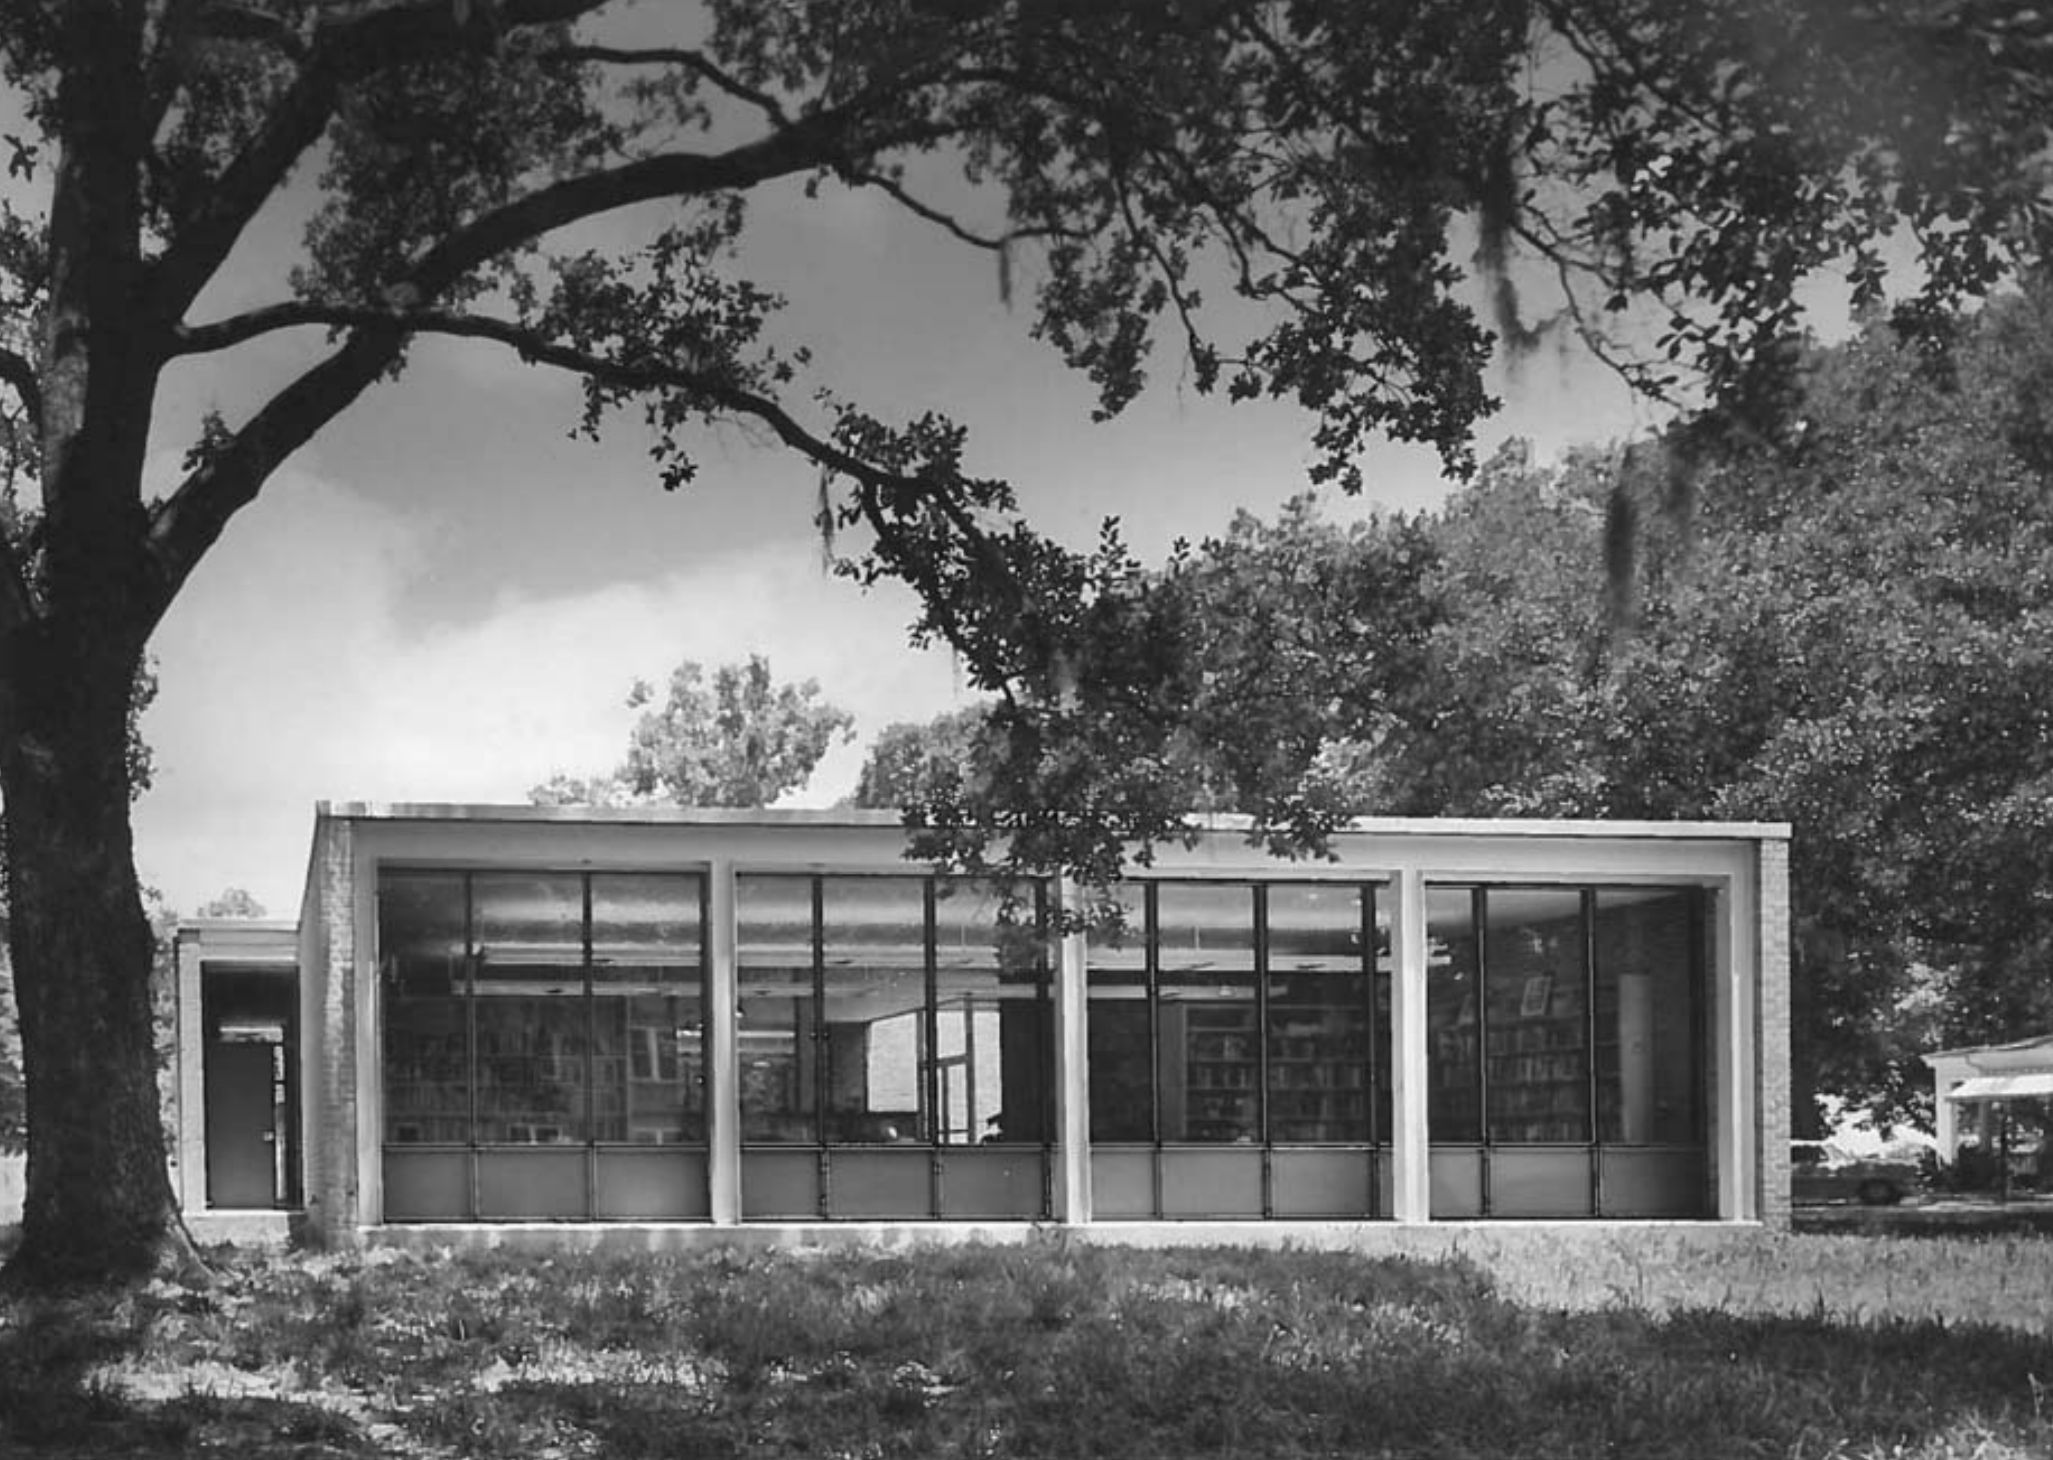 John Desmond, miller memorial library, 1957,hammond, la,John Desmond Papers, Louisiana and Lower Mississippi Valley Collections, LSU Libraries.